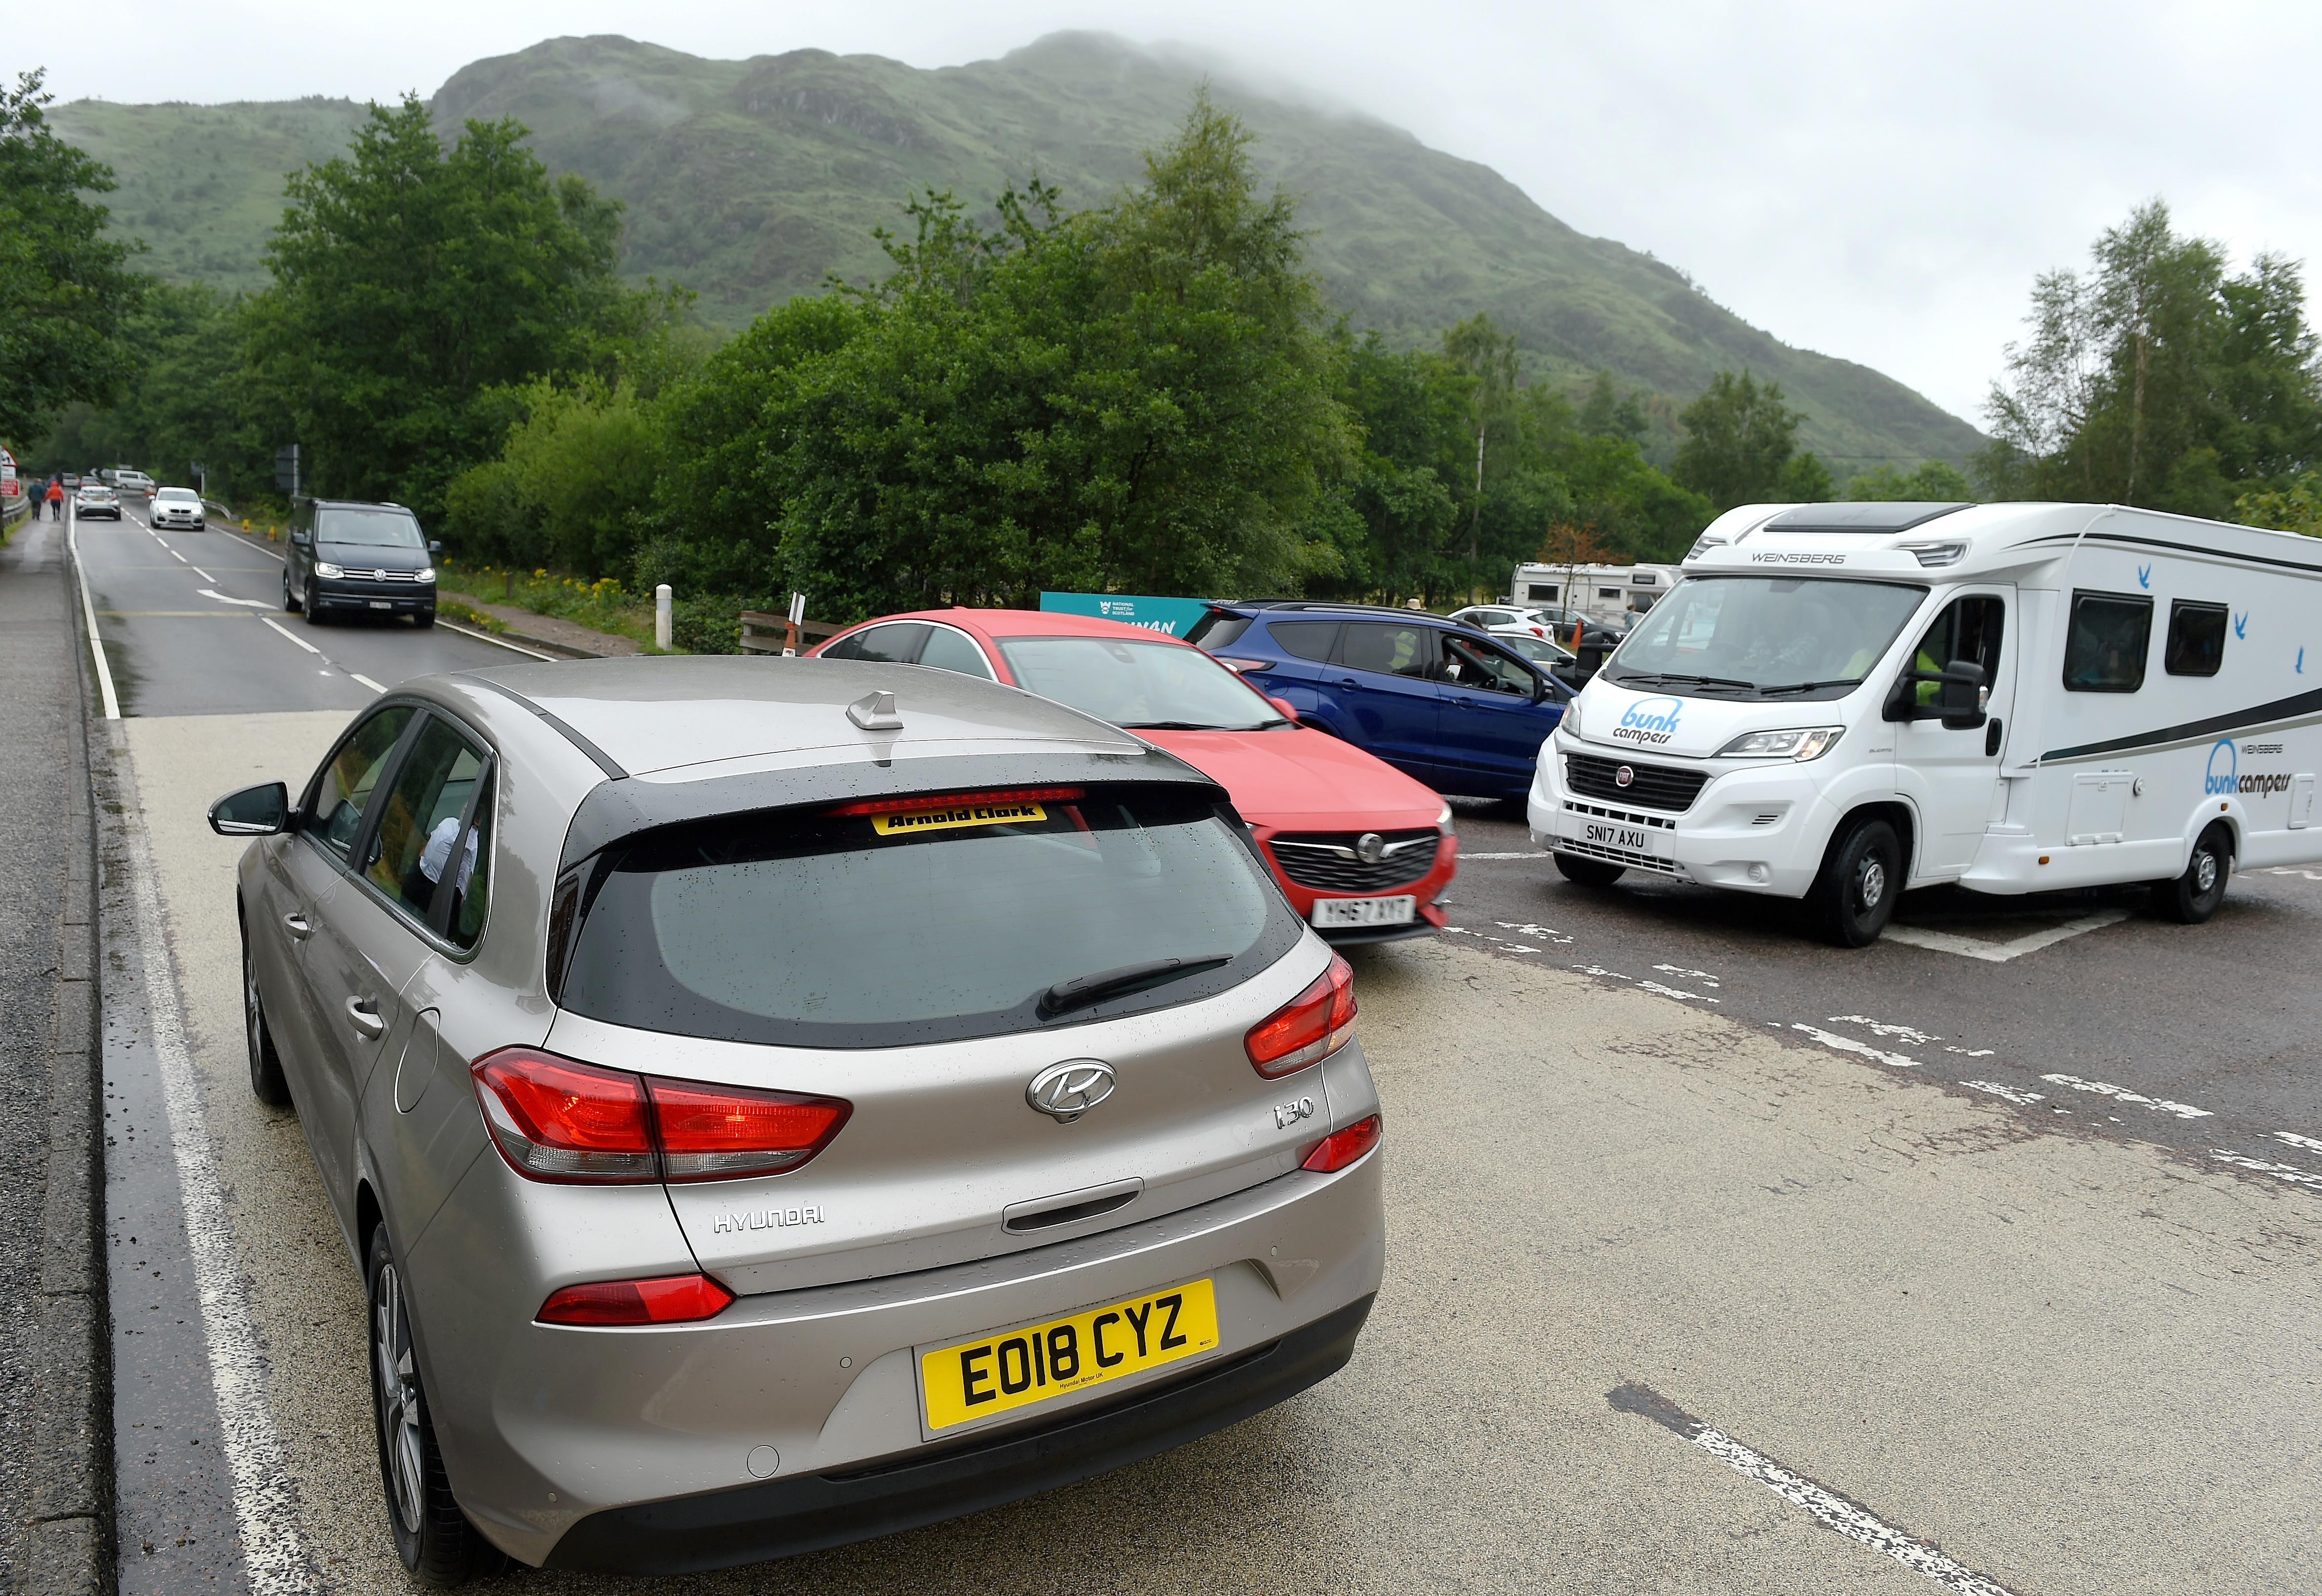 A very busy Glenfinnan Monument visitor centre.